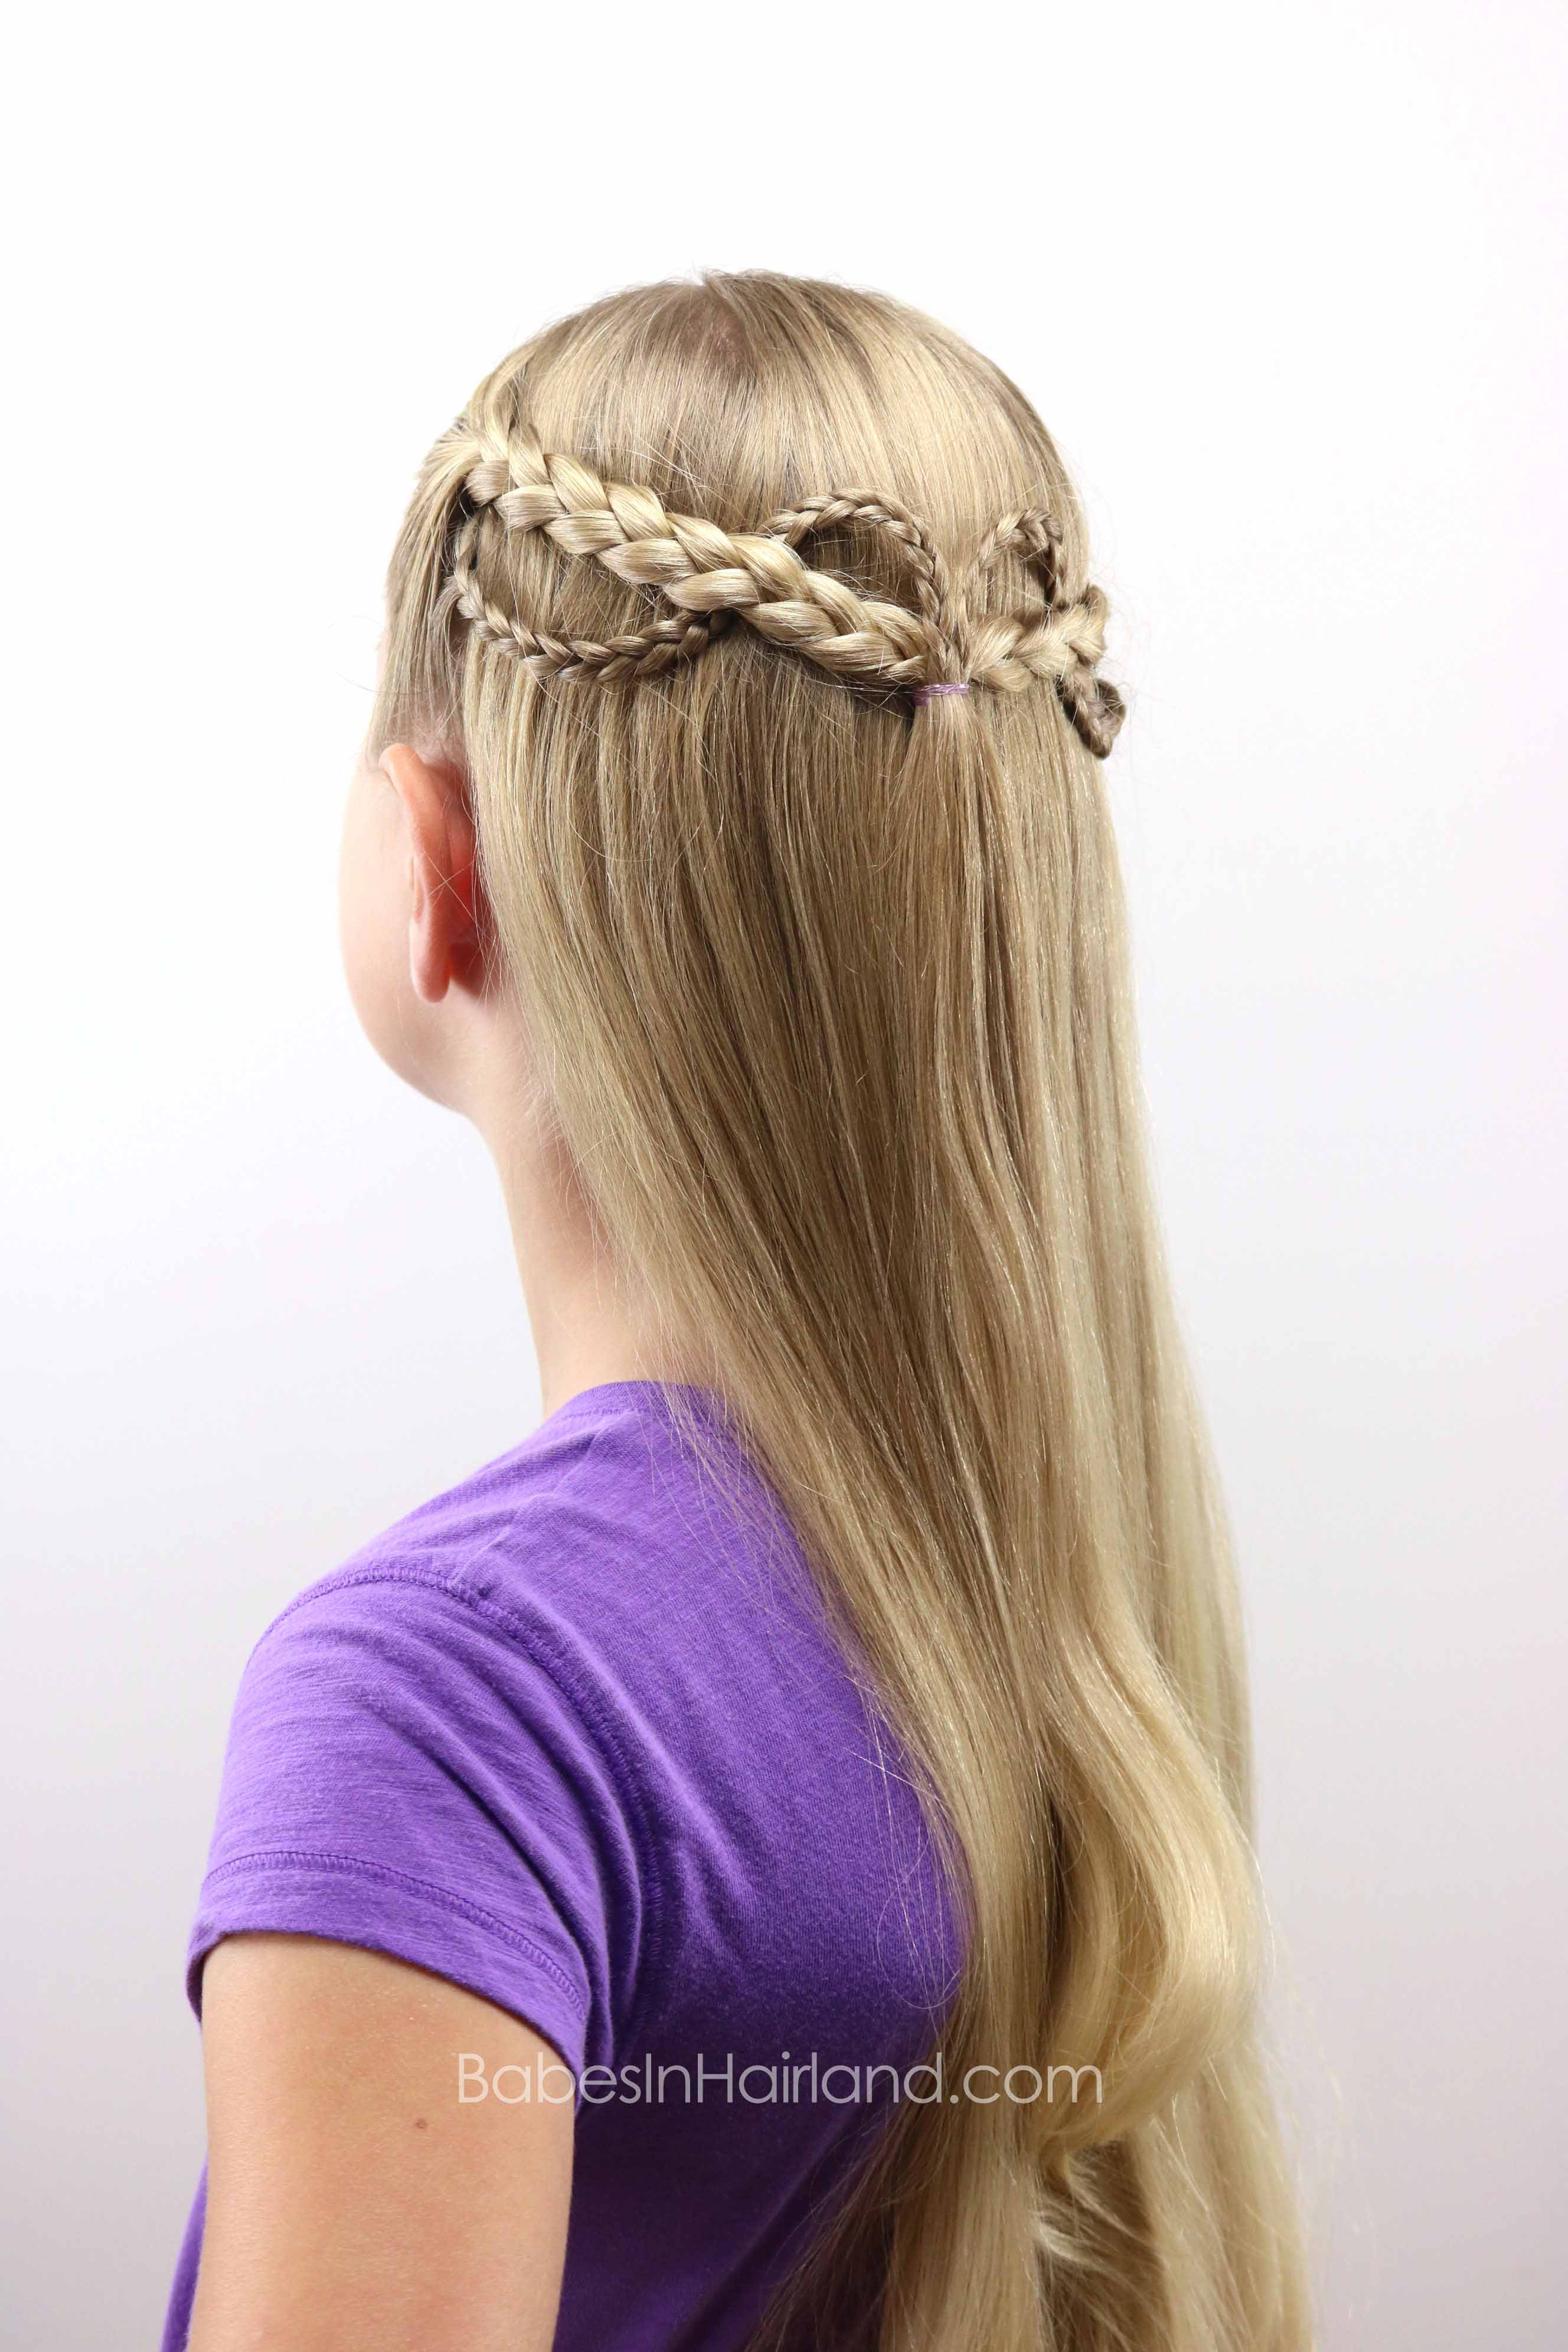 Roller Coaster Braids Back To School Hairstyle Babes